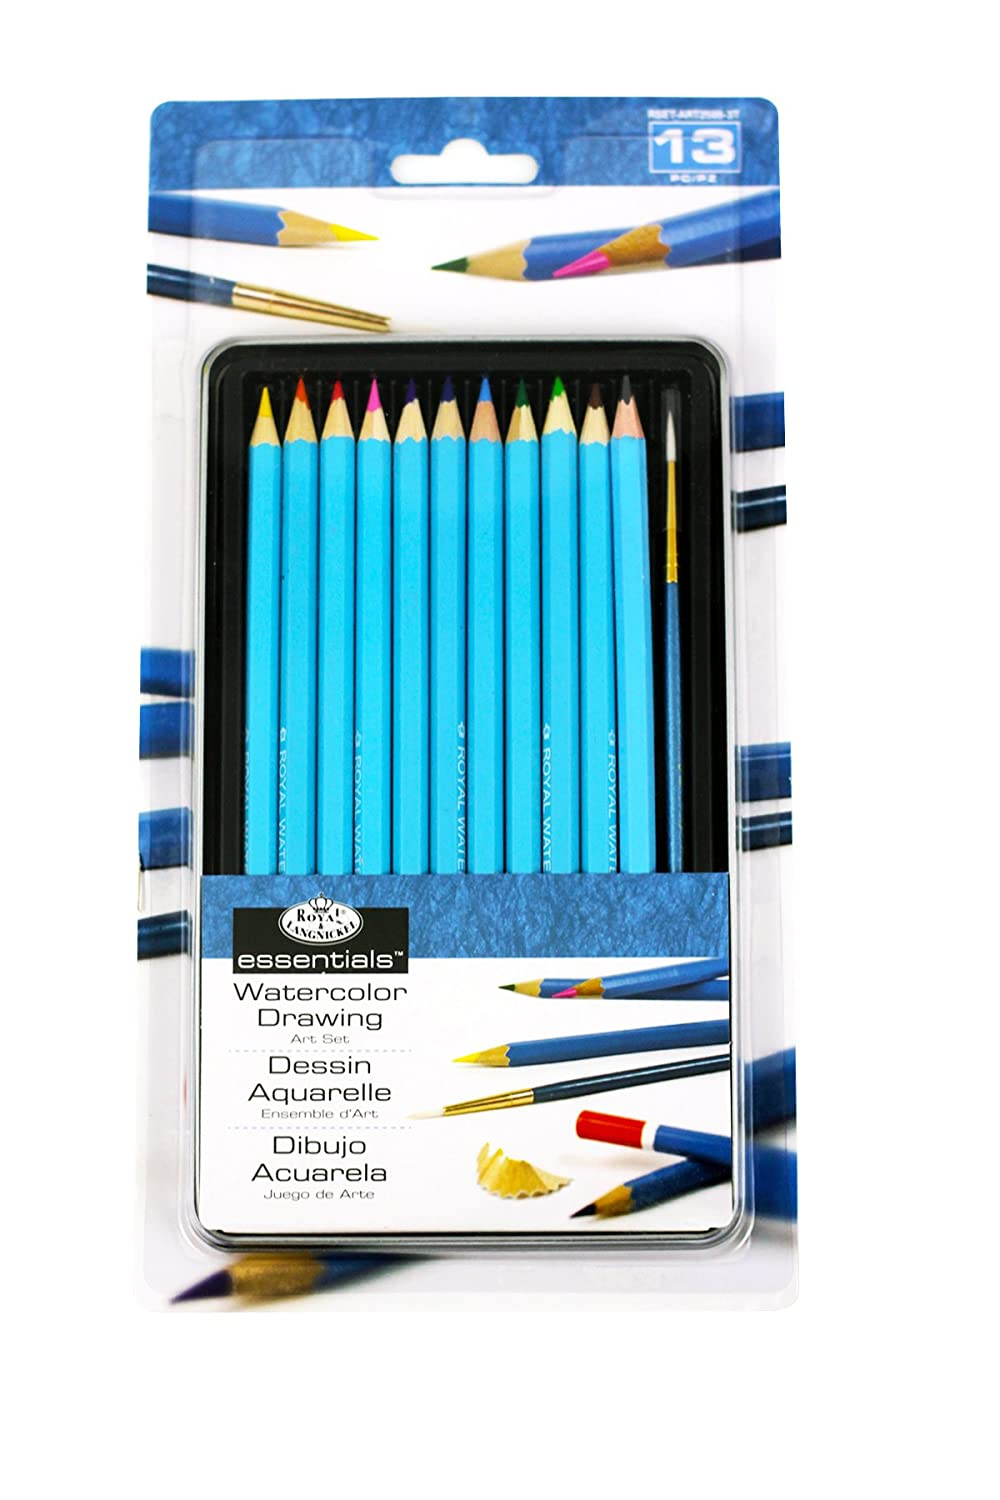 The Best Watercolor Pencils 4